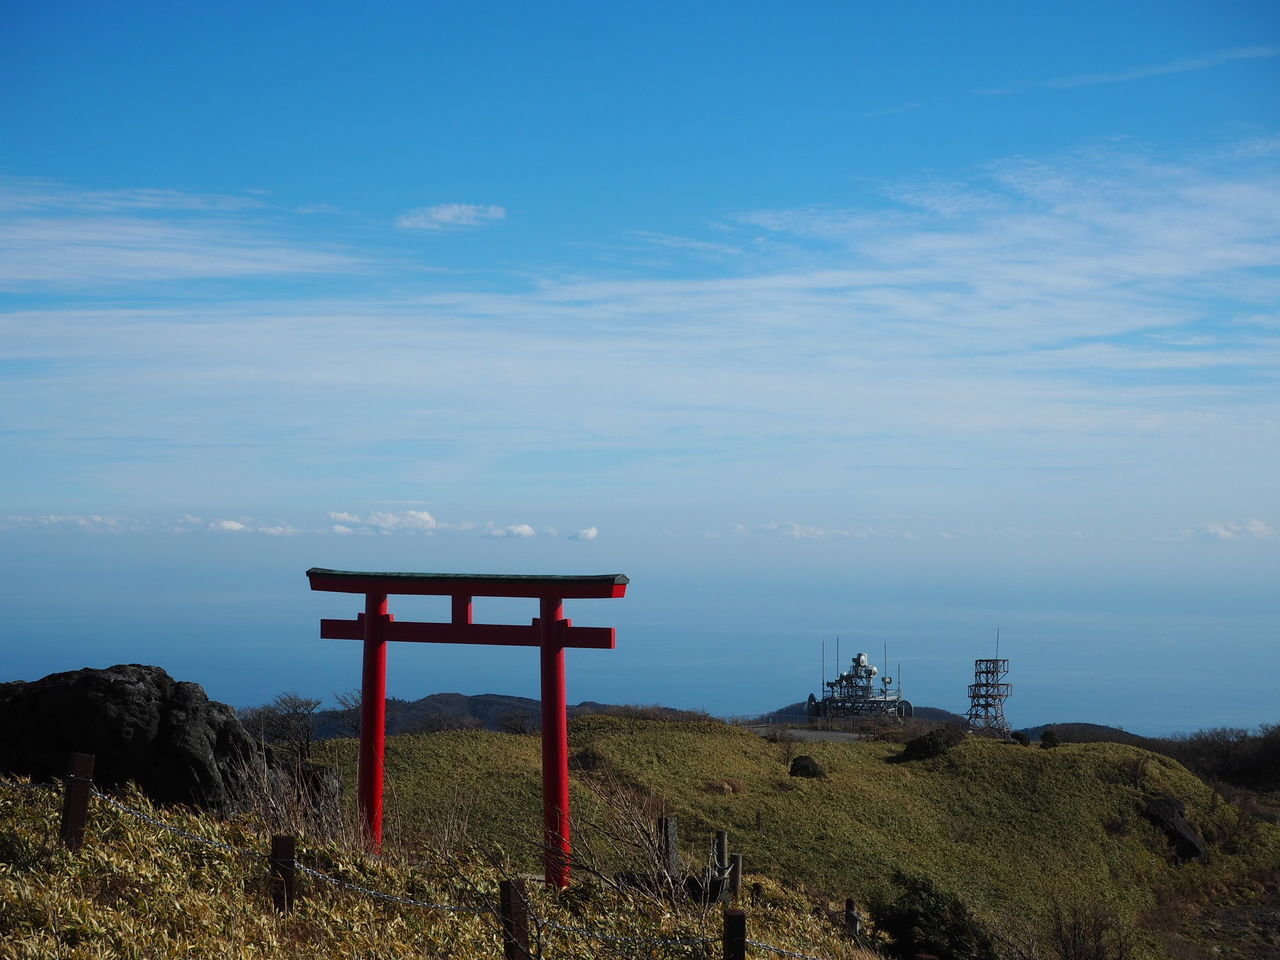 No People Beauty In Nature Japan Sky Mountain Shrine Red 鳥居 だれもいない 永遠 の 入り口